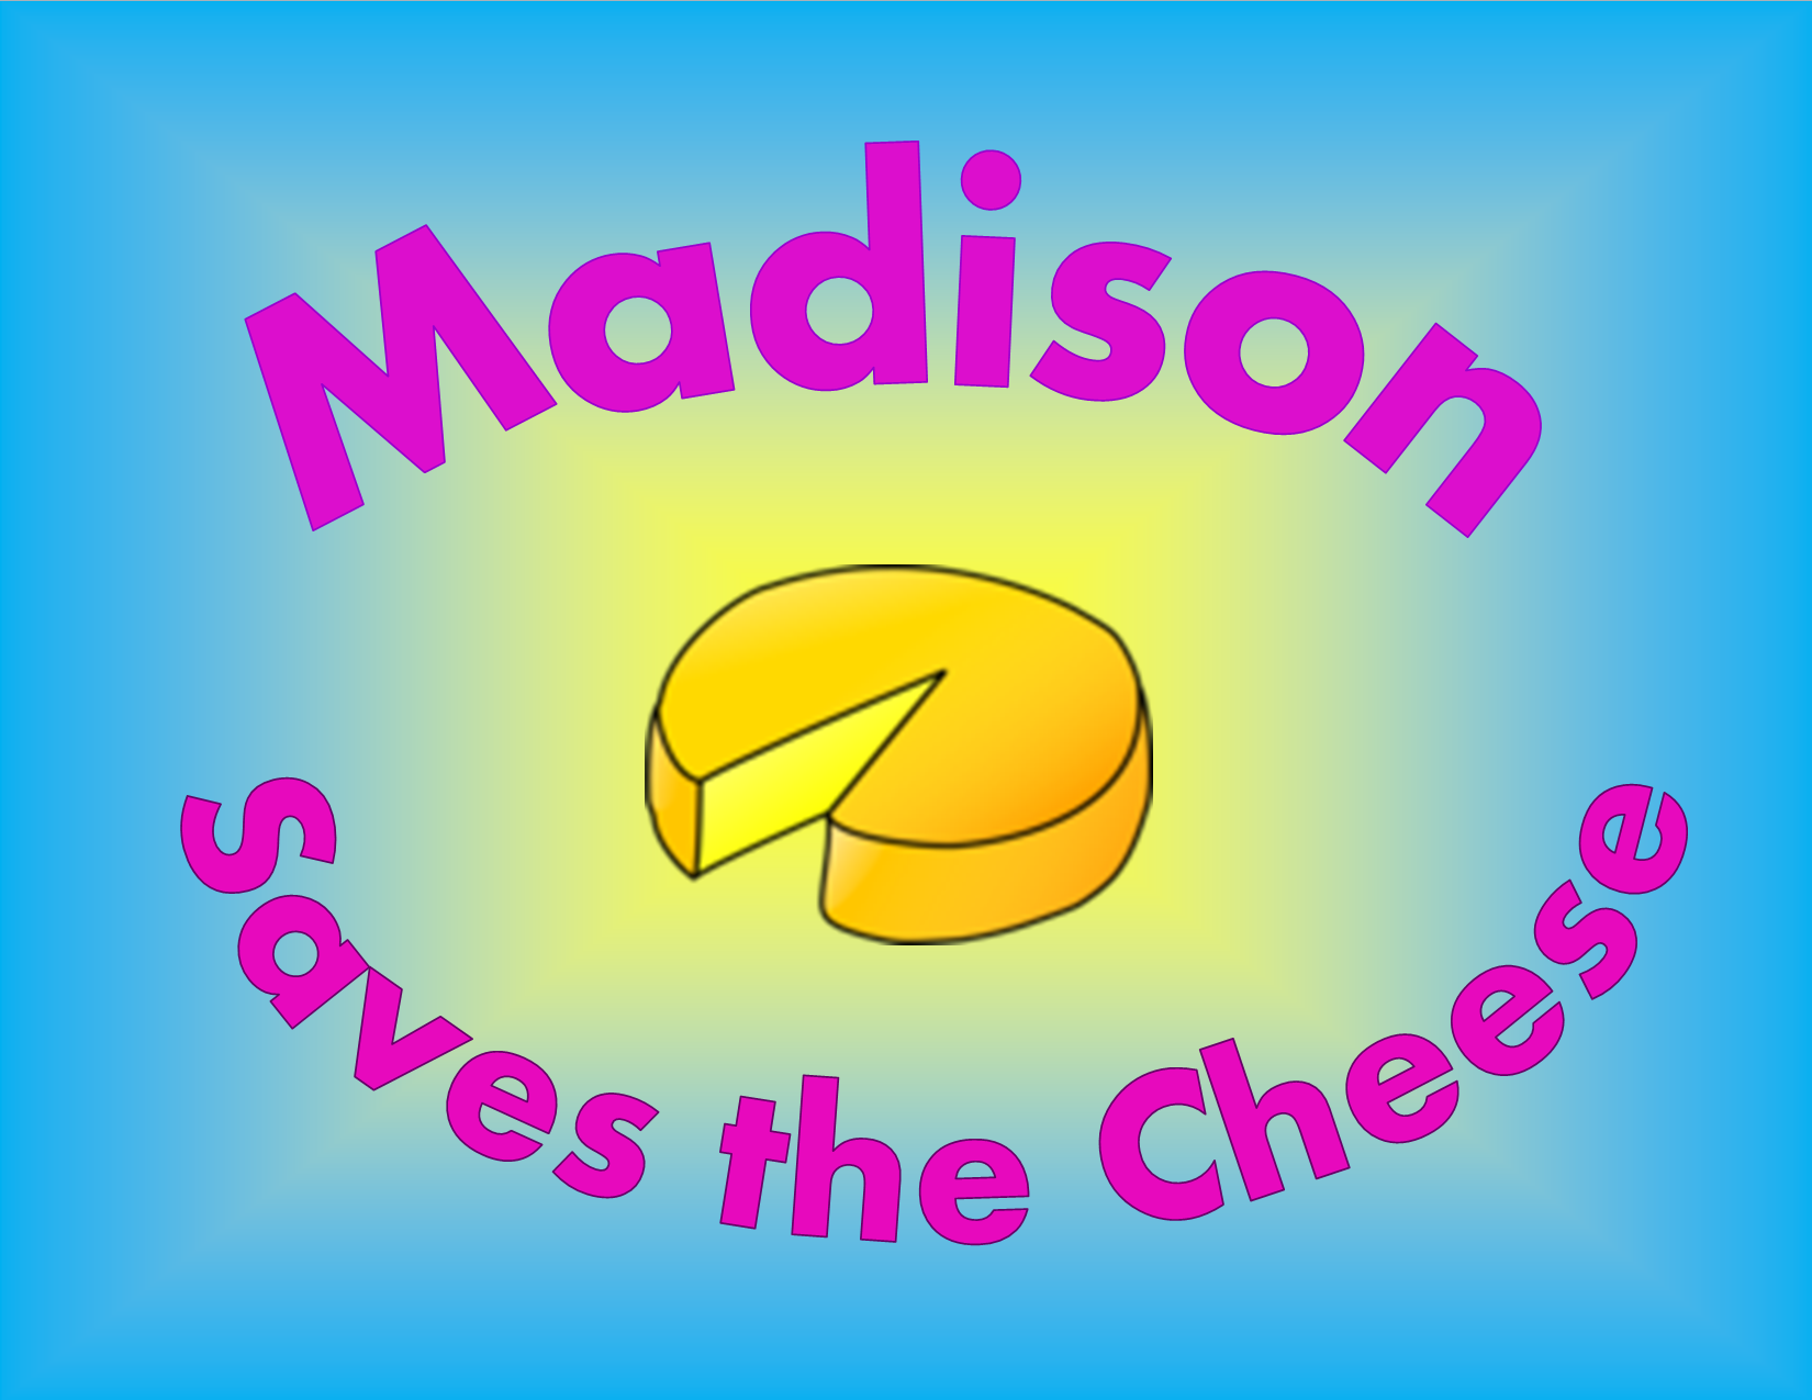 G33kpod Presents: Madison Saves the Cheese Episode 1: It's Just so Amazing!